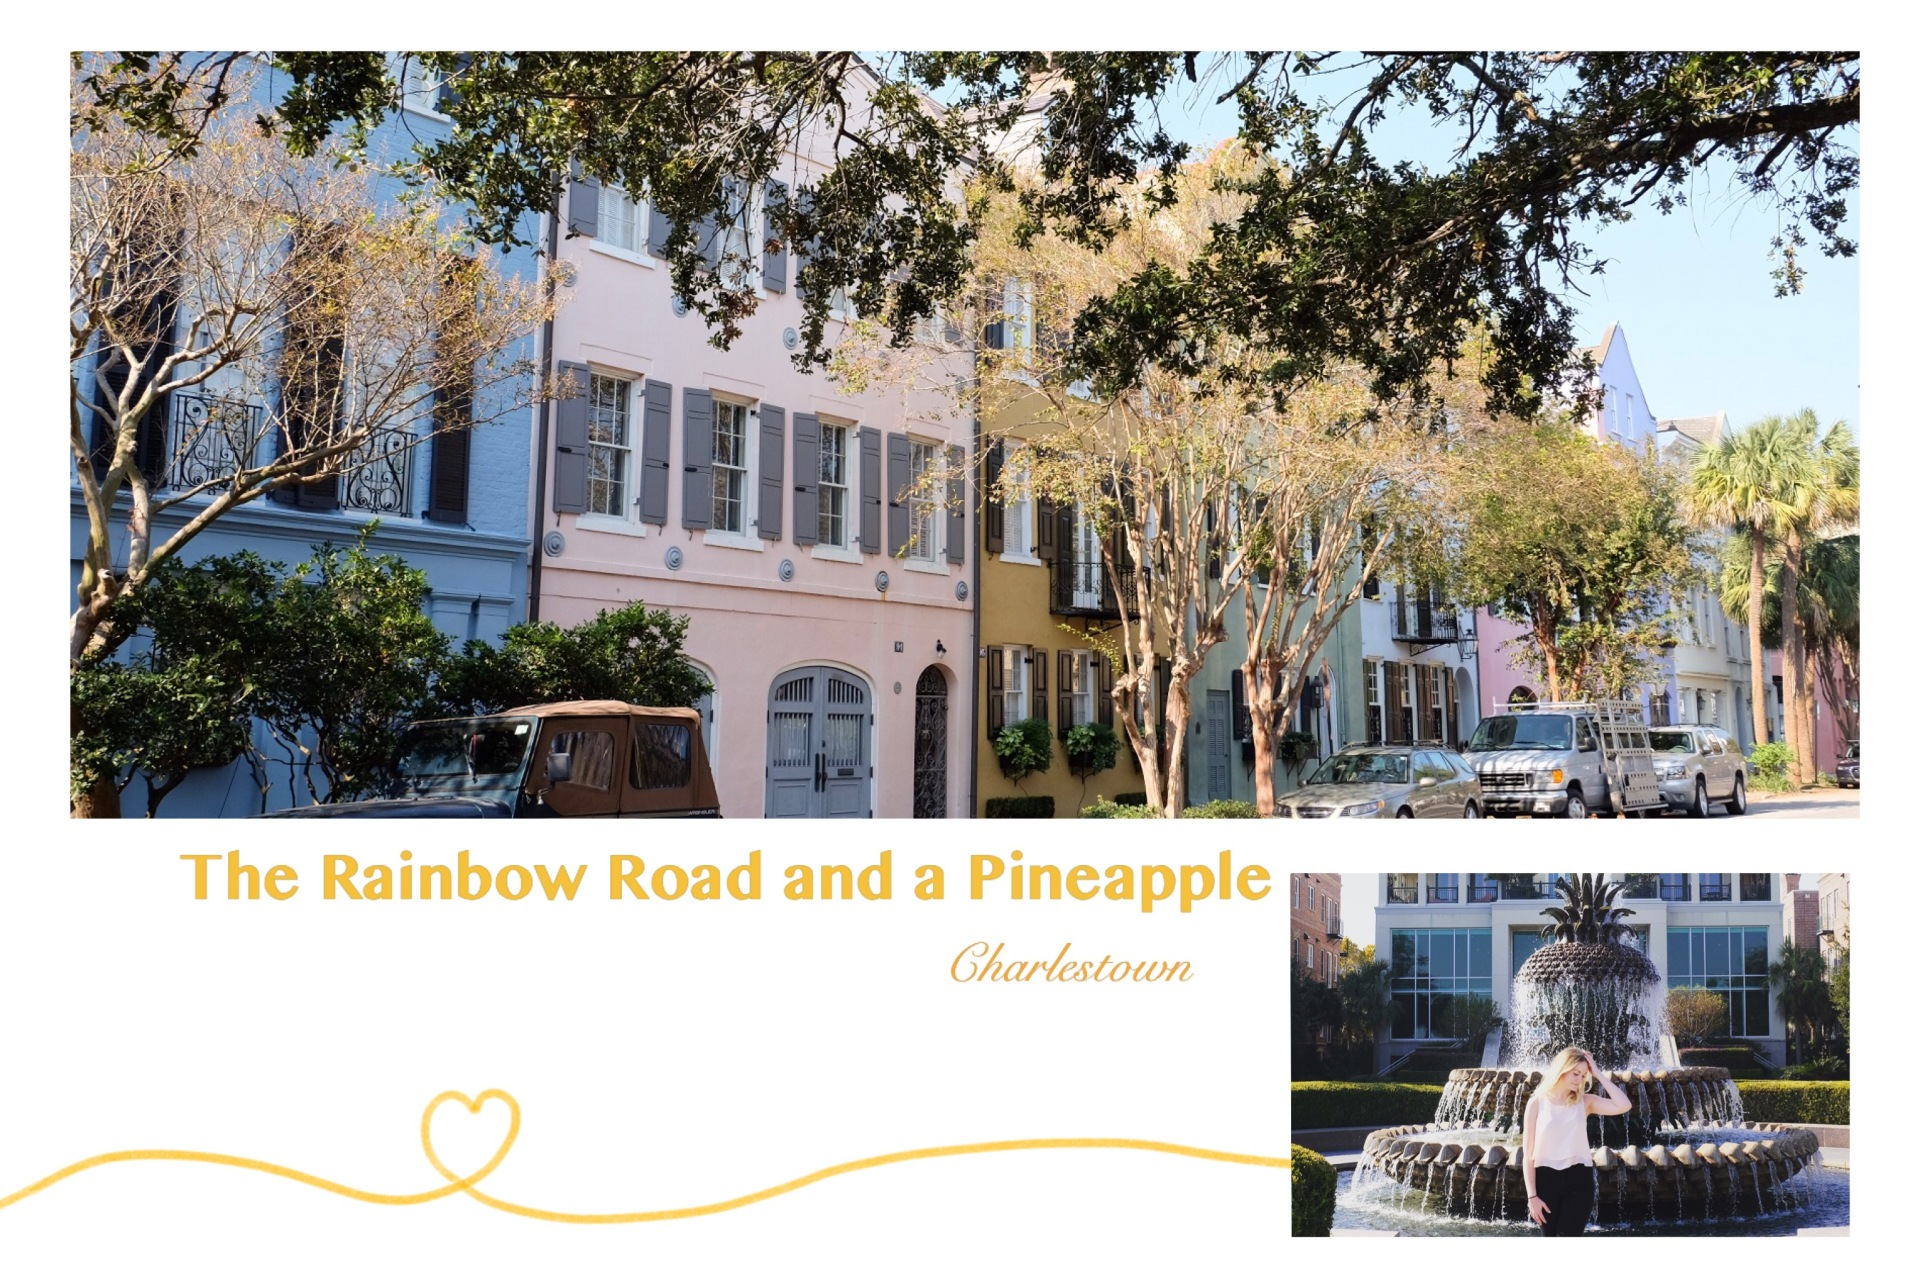 The Rainbow Row and a Pineapple